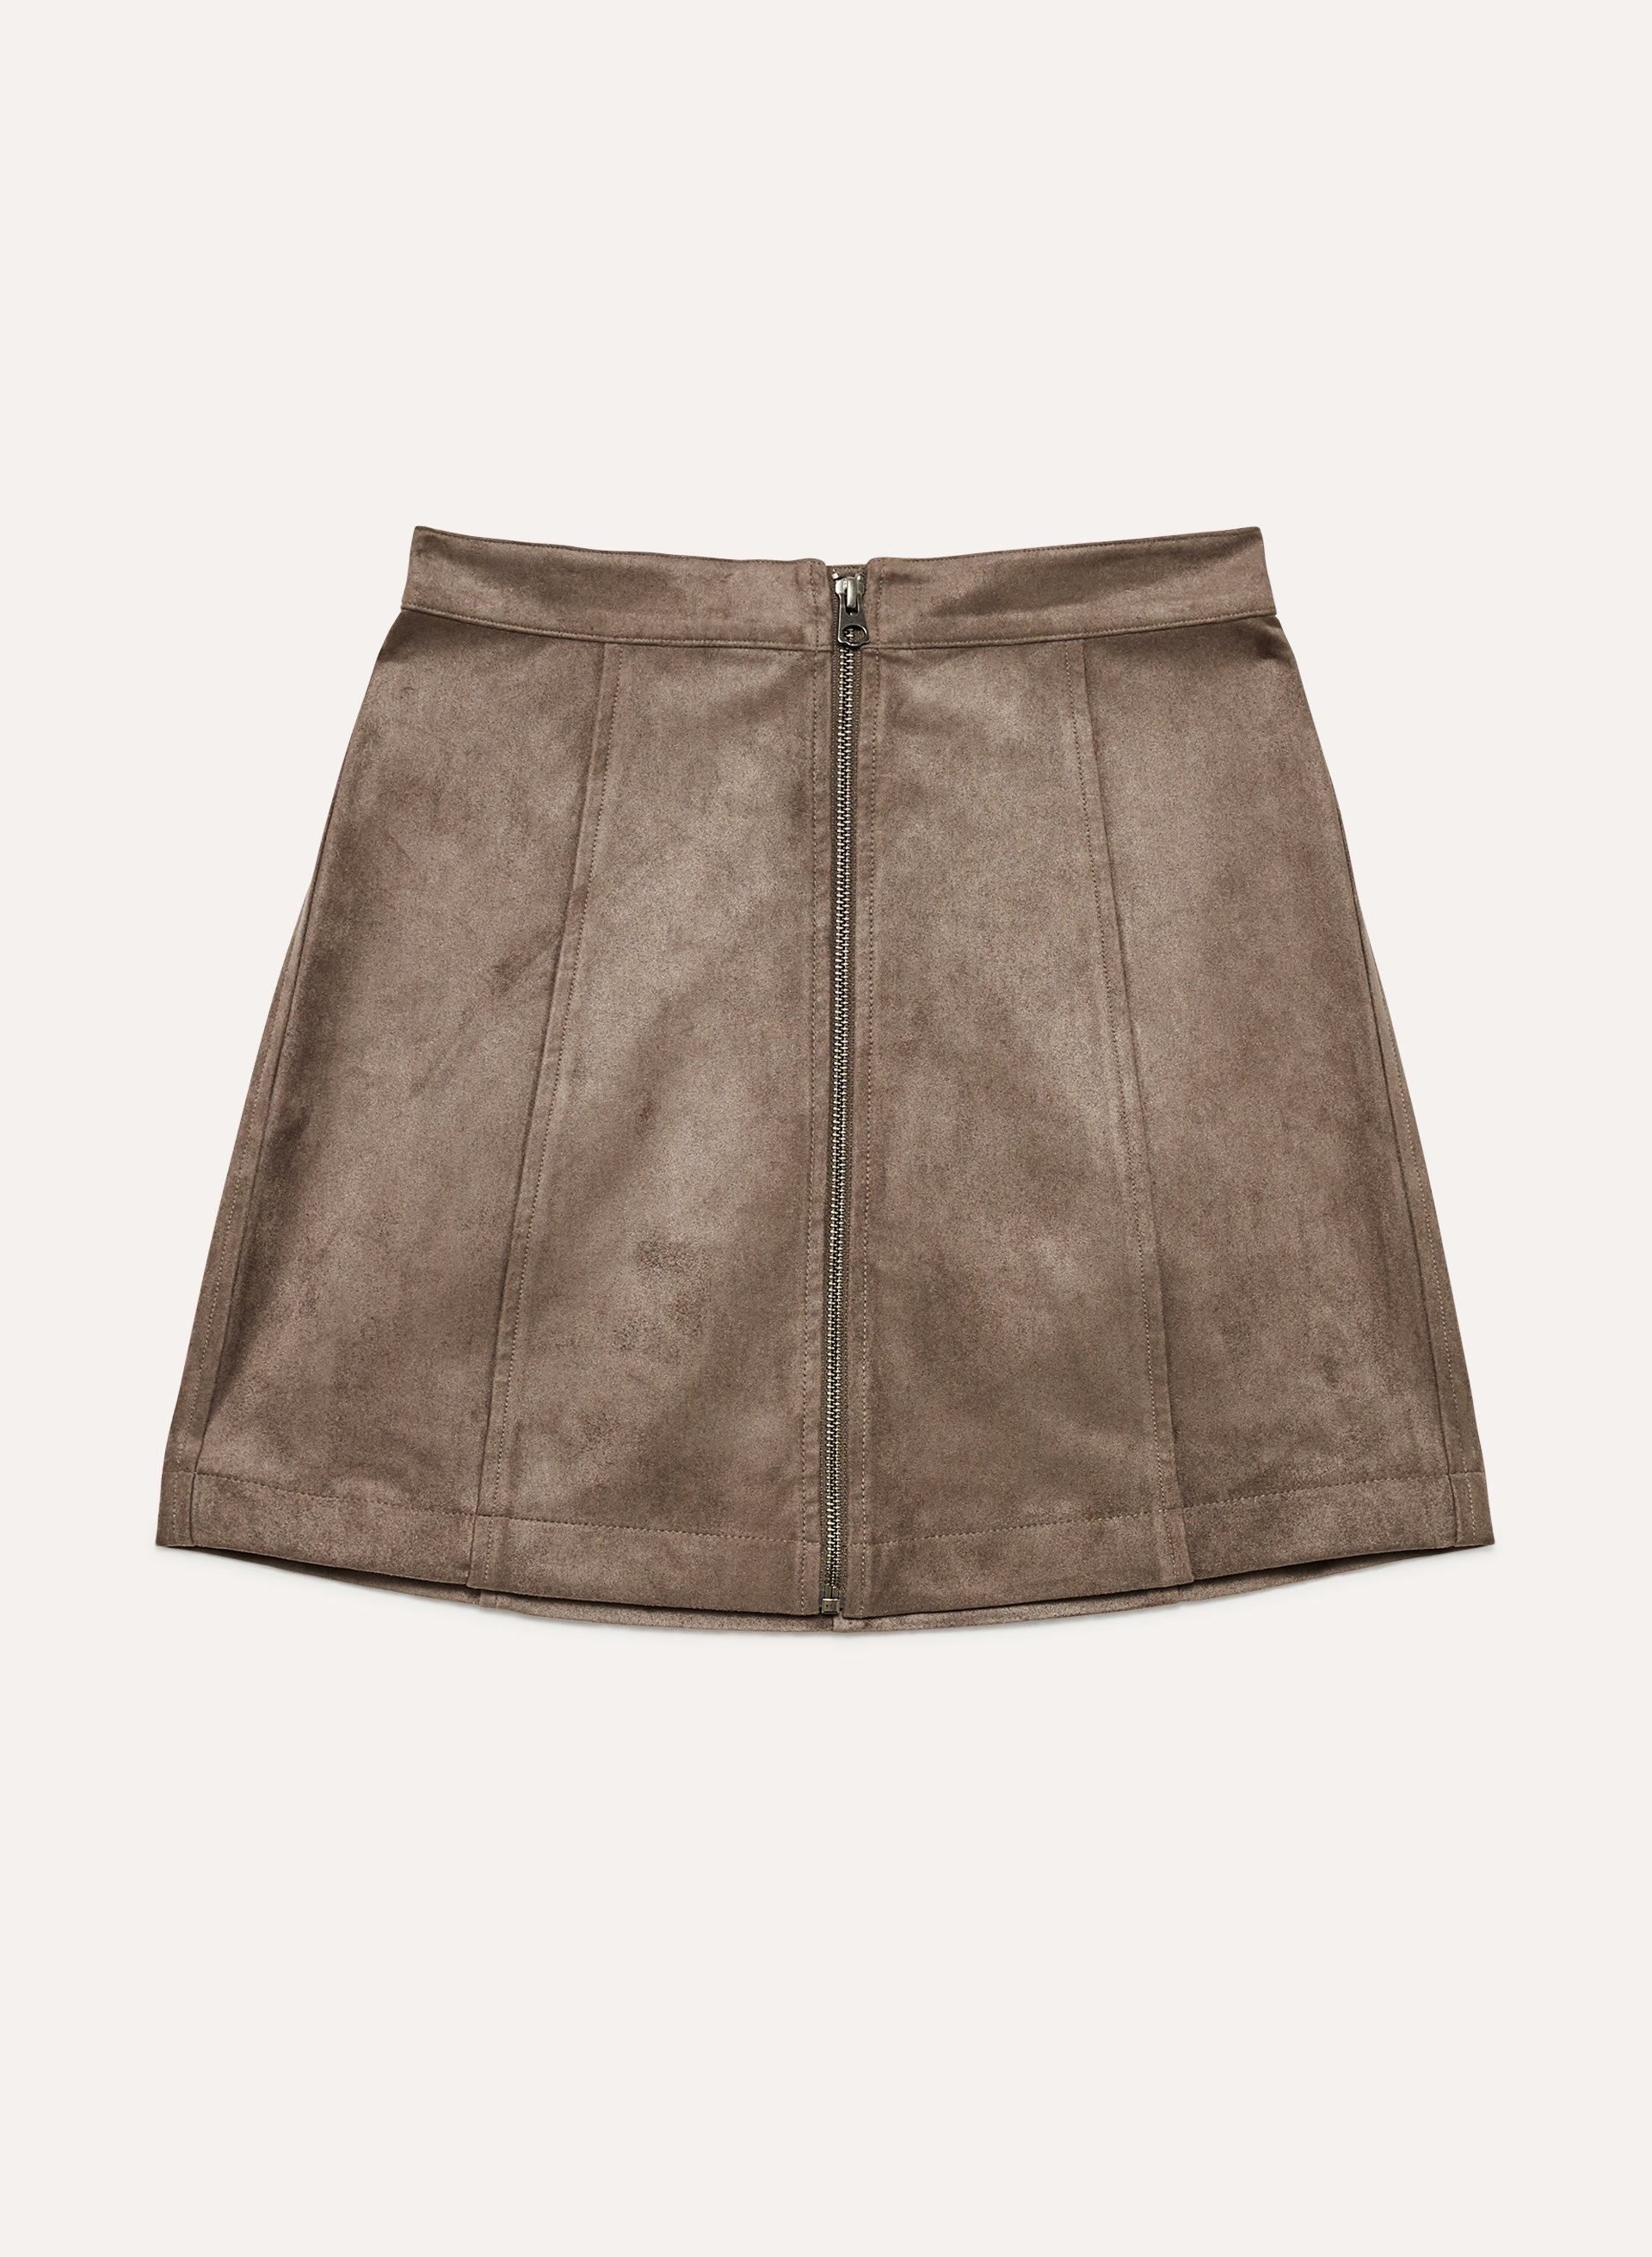 cced4a4f23 leah skirt Faux suede, zip-up mini skirt